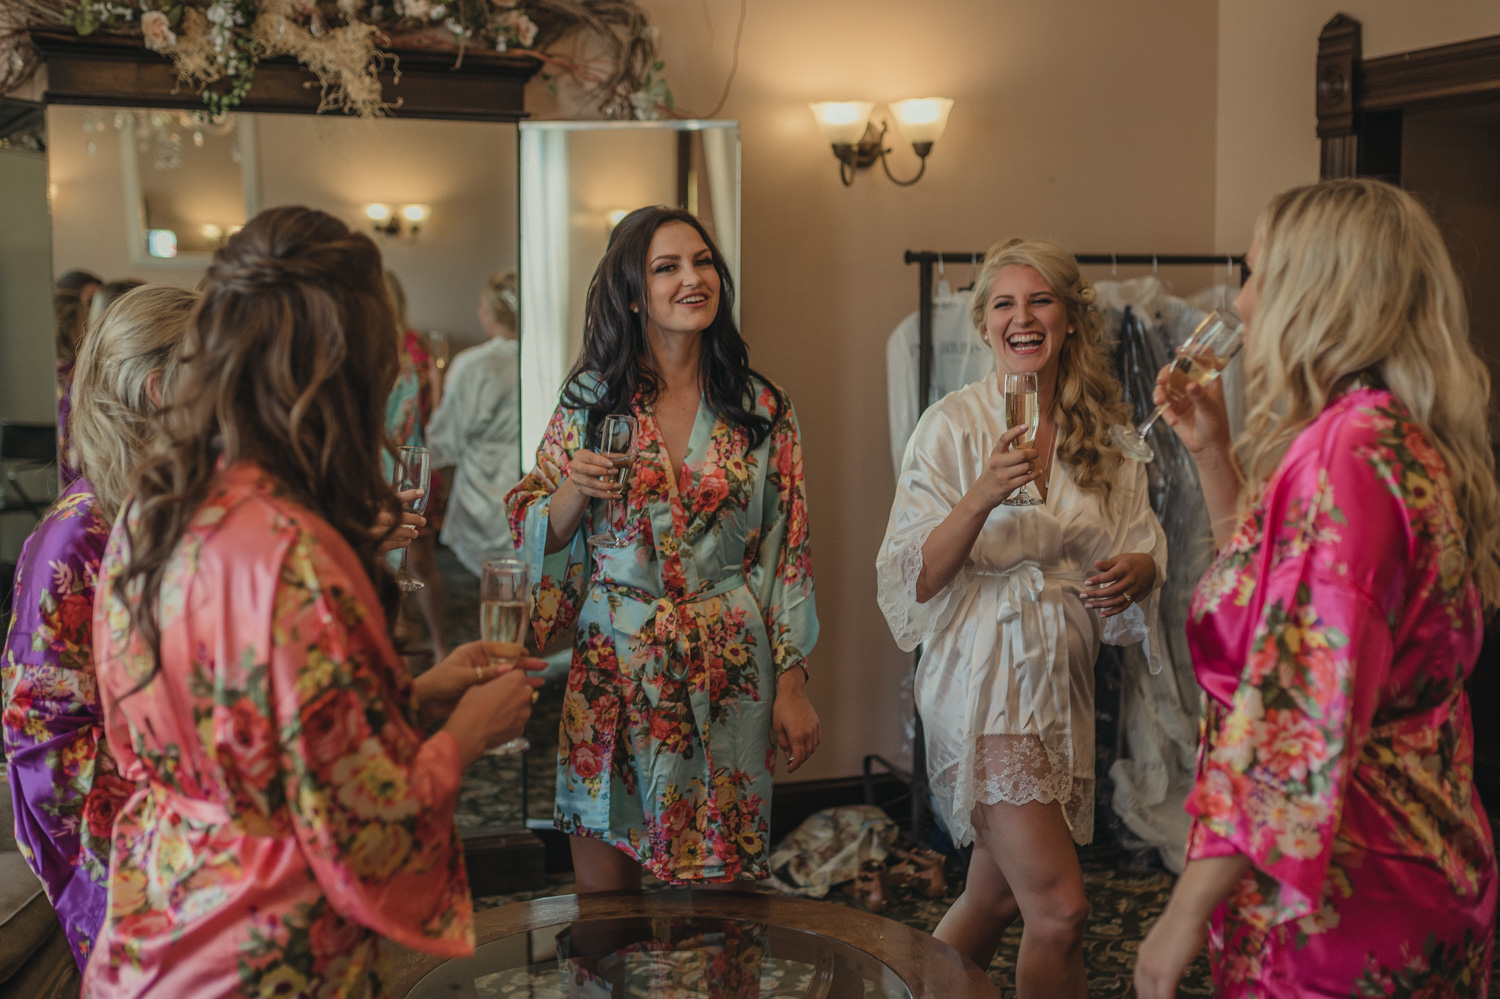 Wedgewood Sequoia Mansion wedding bridesmaids laughing photo